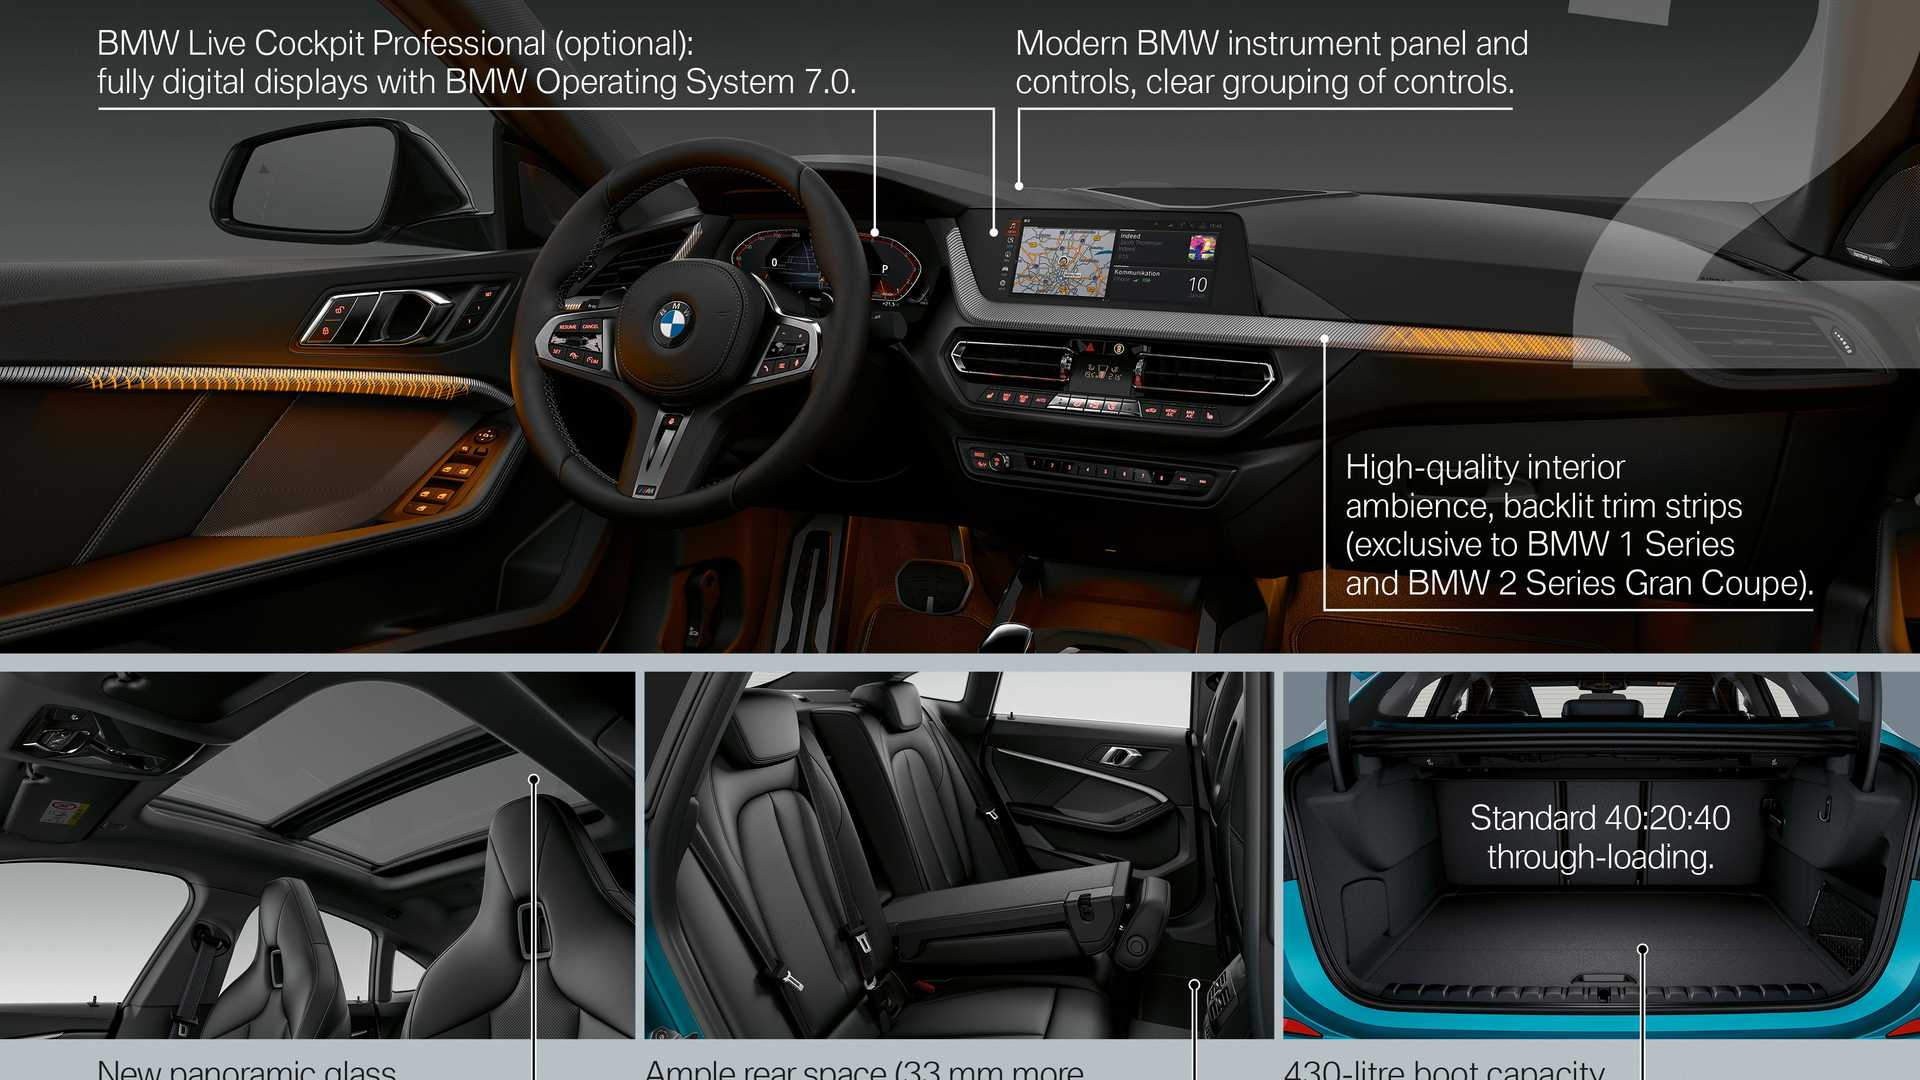 Most Expensive Bmw 2 Series Gran Coupe Costs 56 810